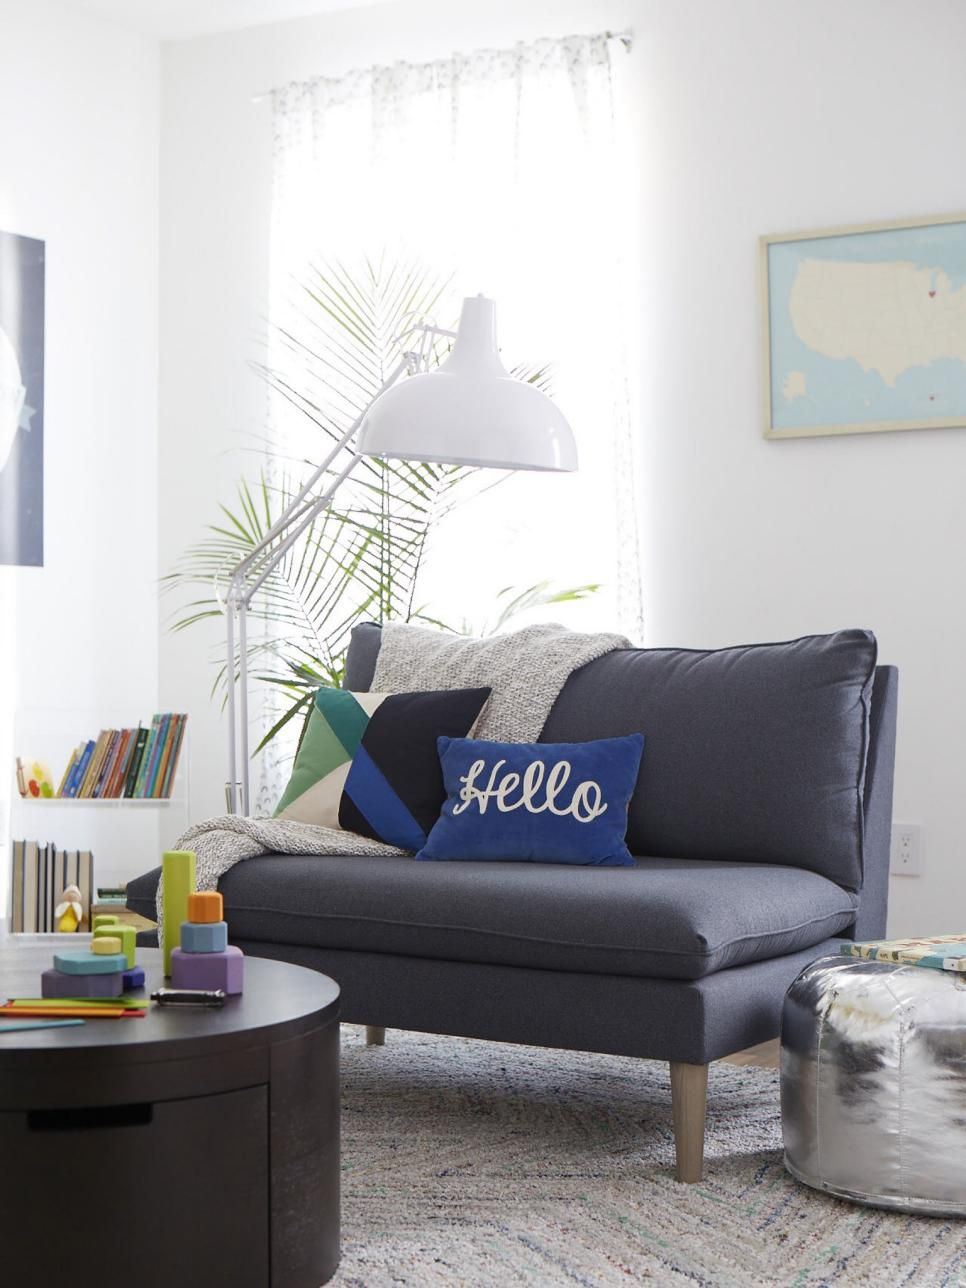 Hgtv Design Ideas Living Room Small Space Decorating Don'ts  Furniture Painted Walls And Hgtv Star